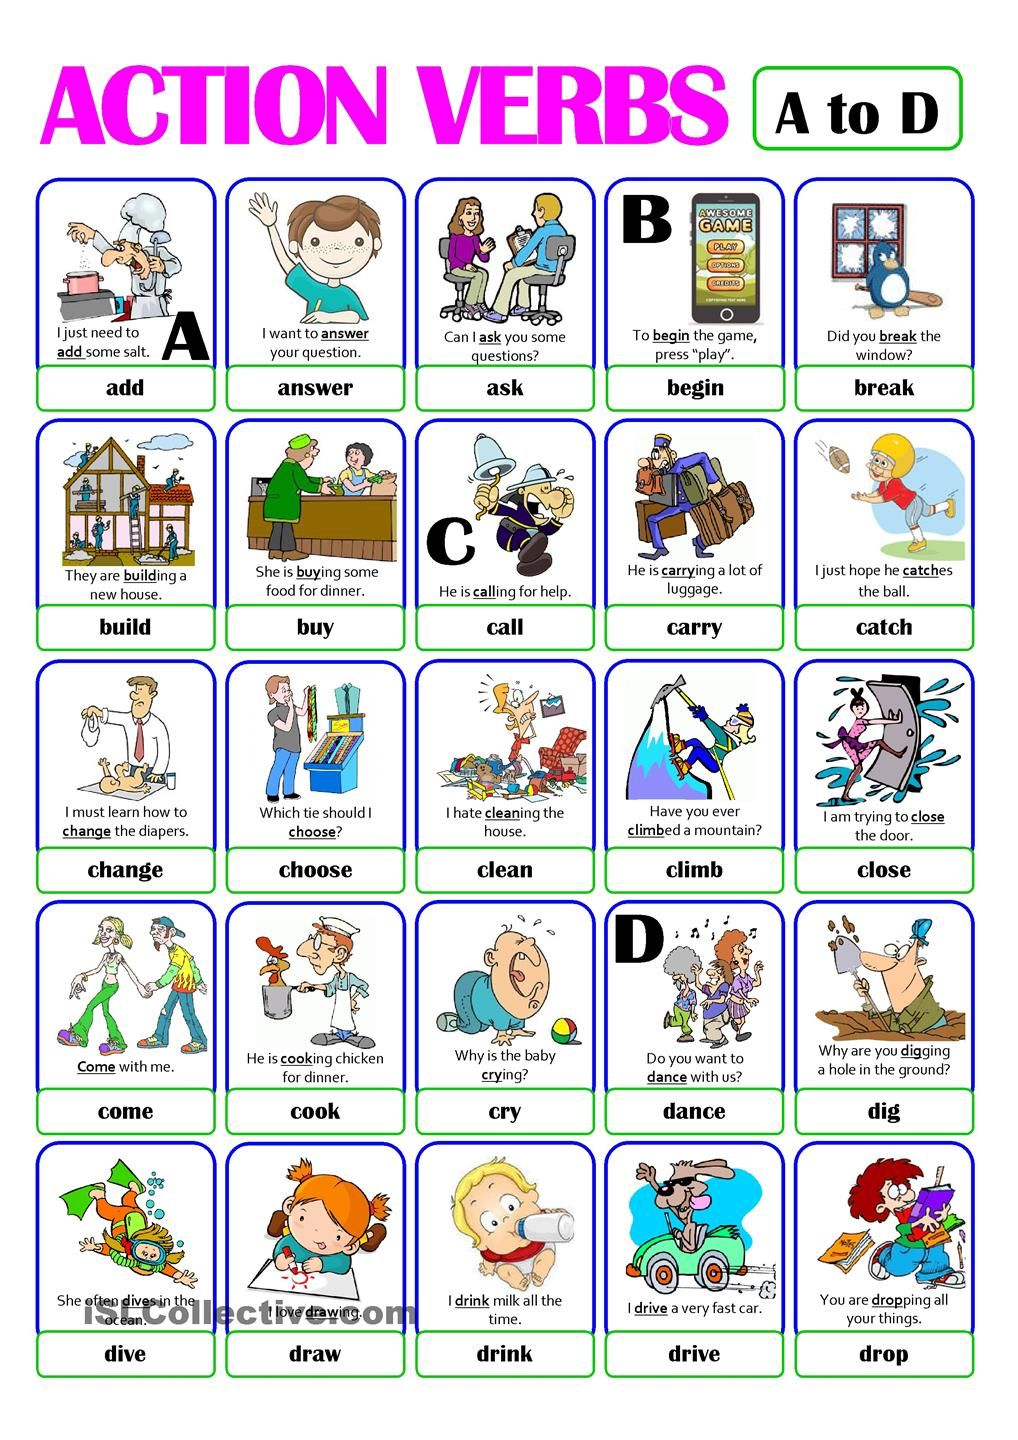 small resolution of PICTIONARY - ACTION VERB SET (1) - from A to D   Action verbs